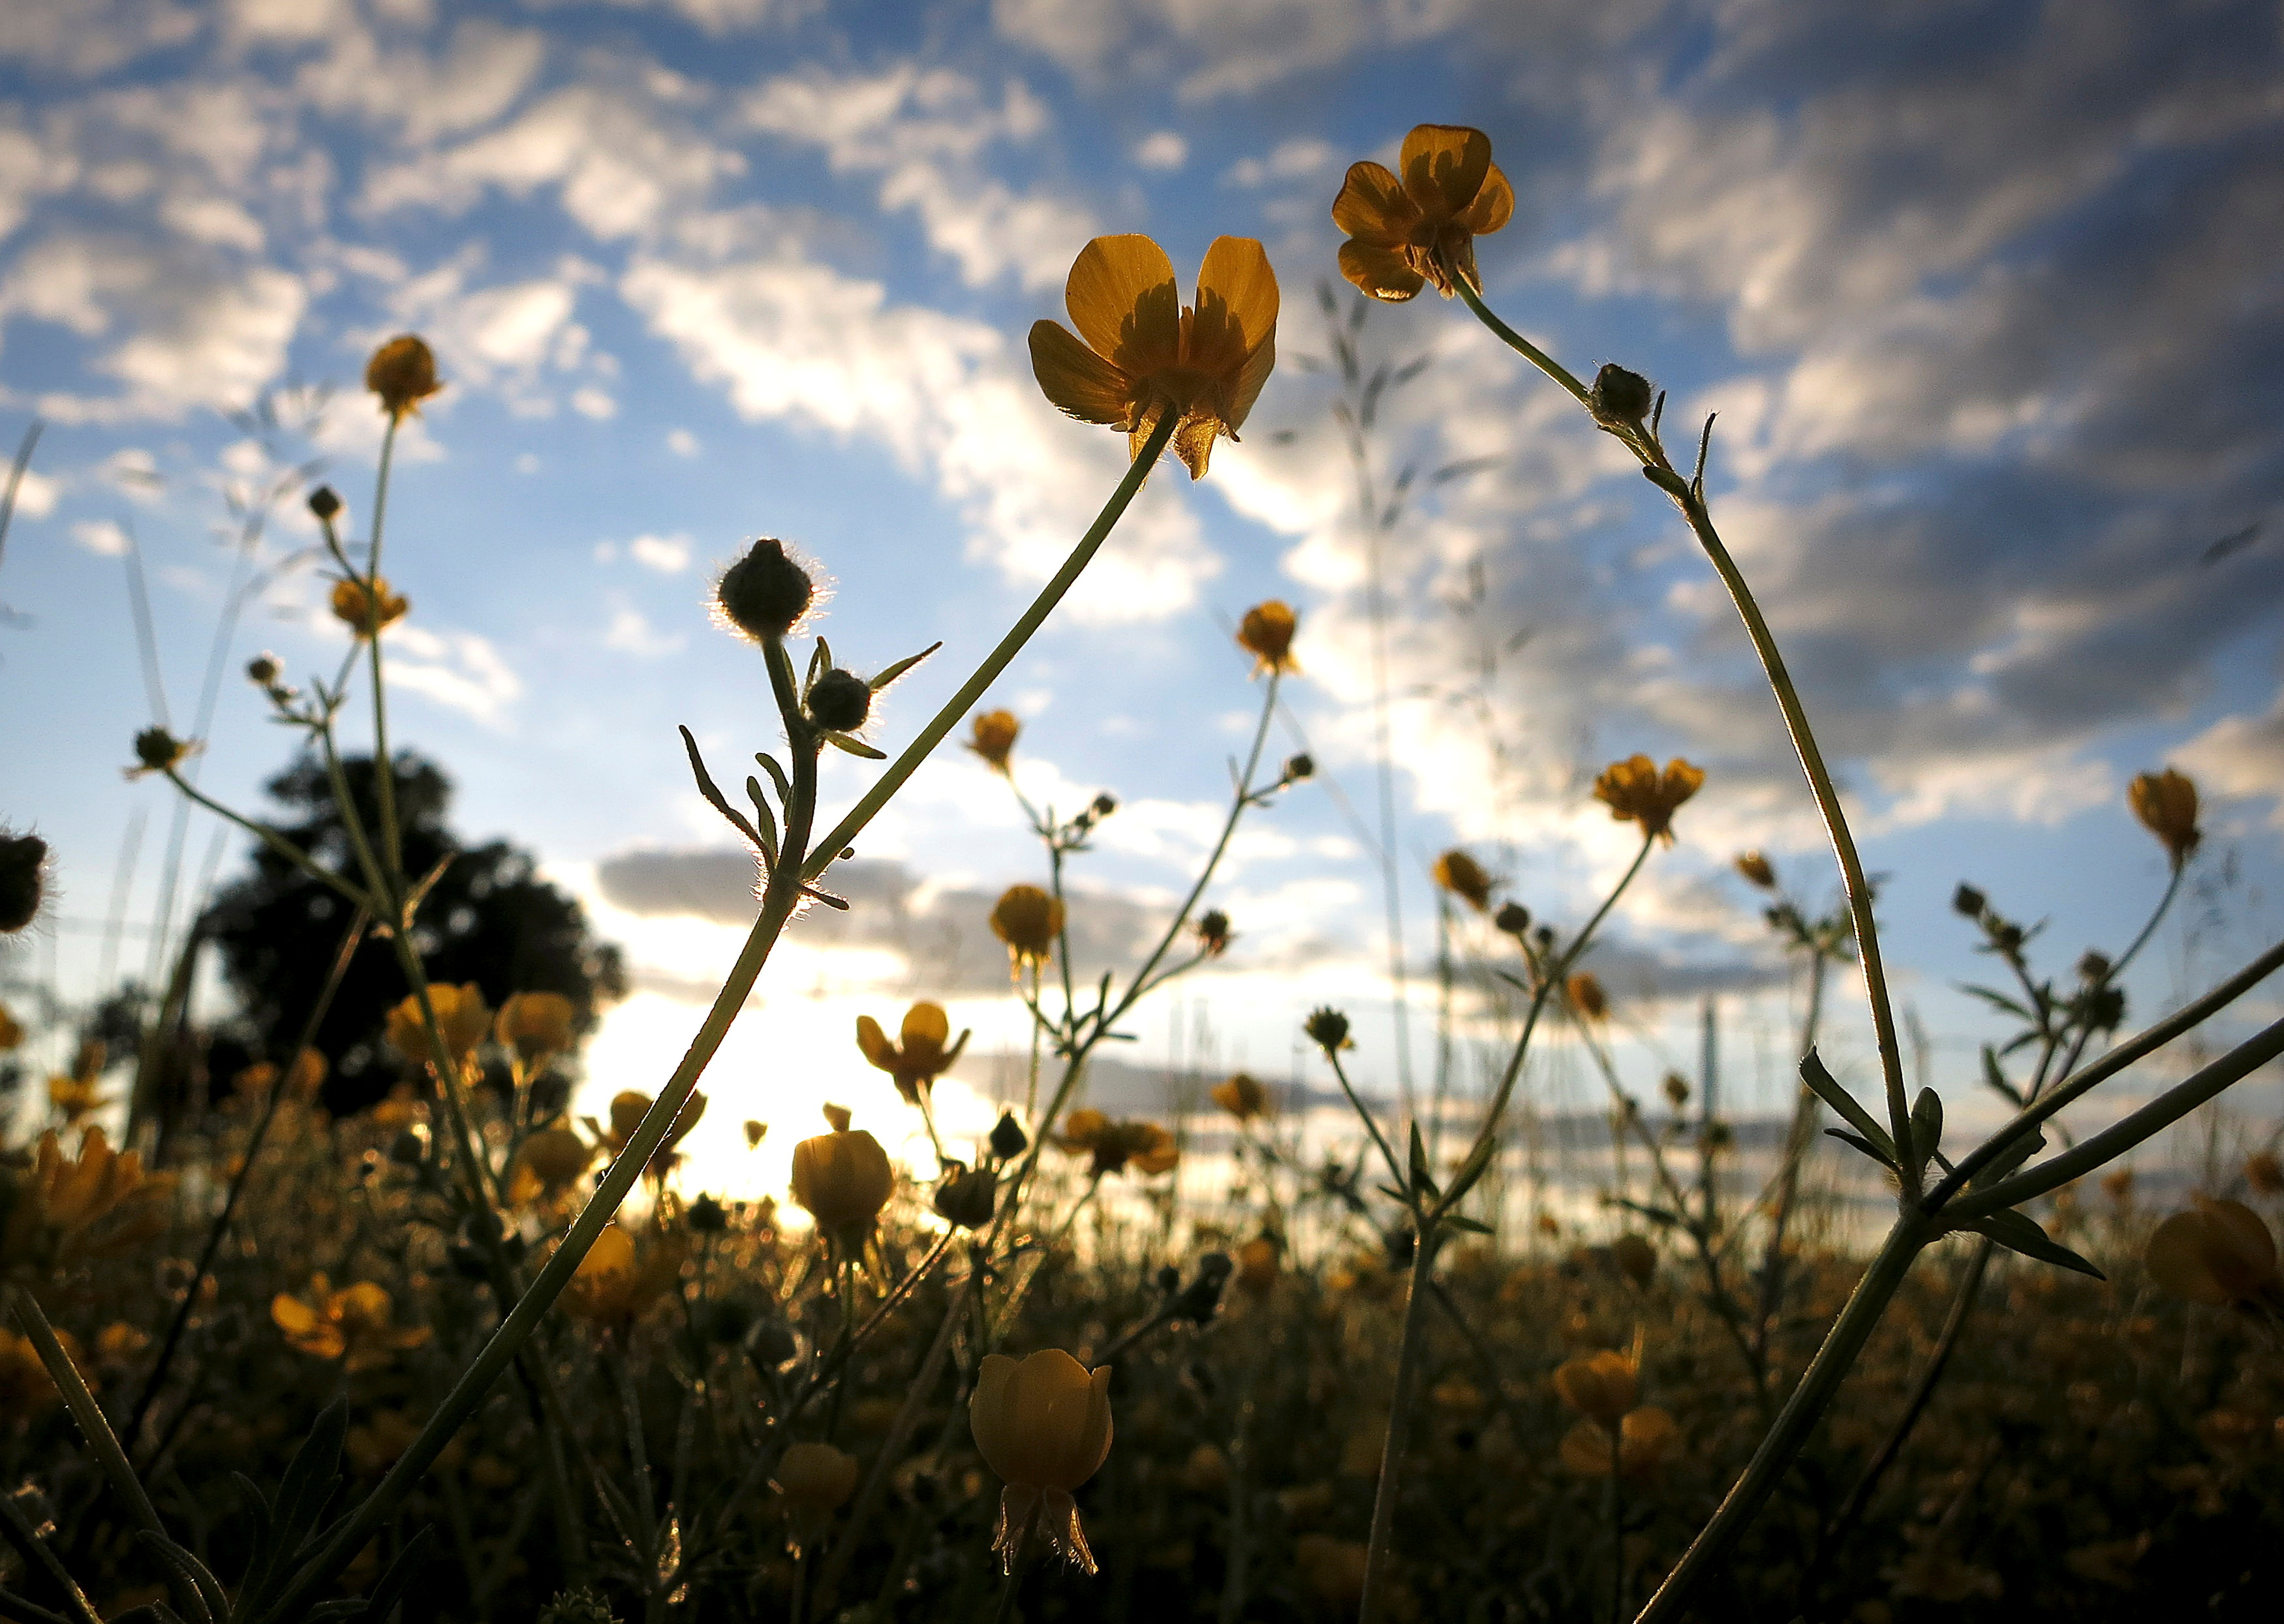 Wild flowers are pictured at sunset in Vilonia, Arkansas on April 30, 2014. Picture taken April 30, 2014. REUTERS/Carlo Allegri